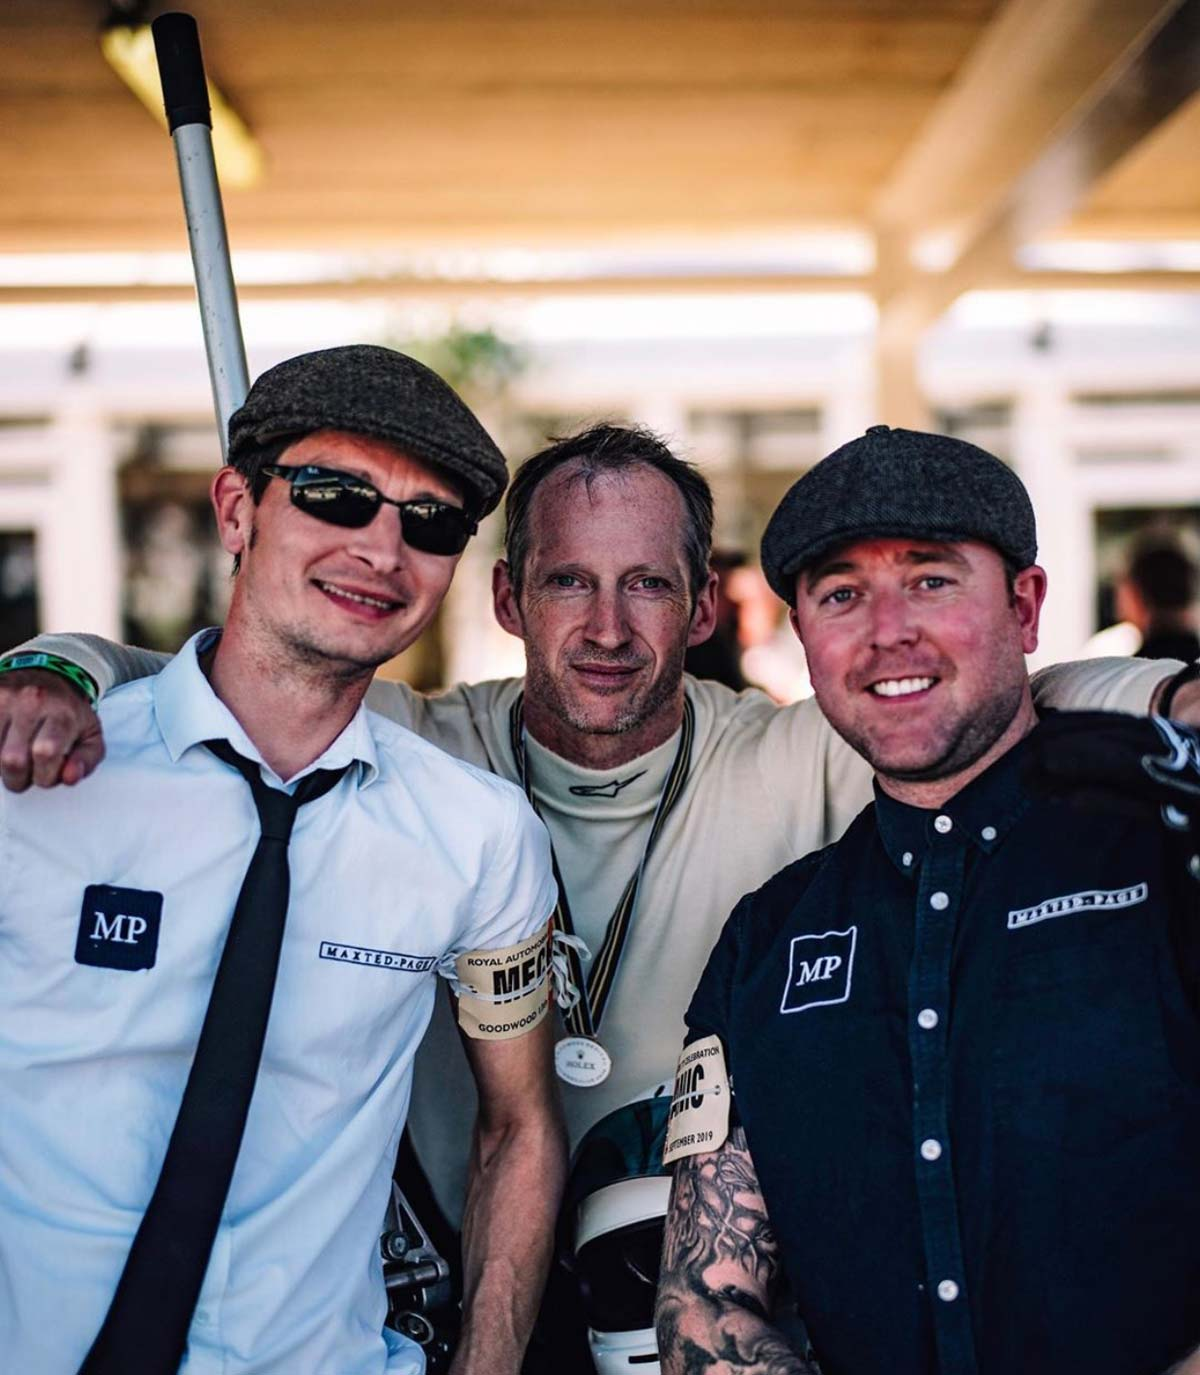 Maxed-Page driver and pit crew at the 2019 Goodwood Revival